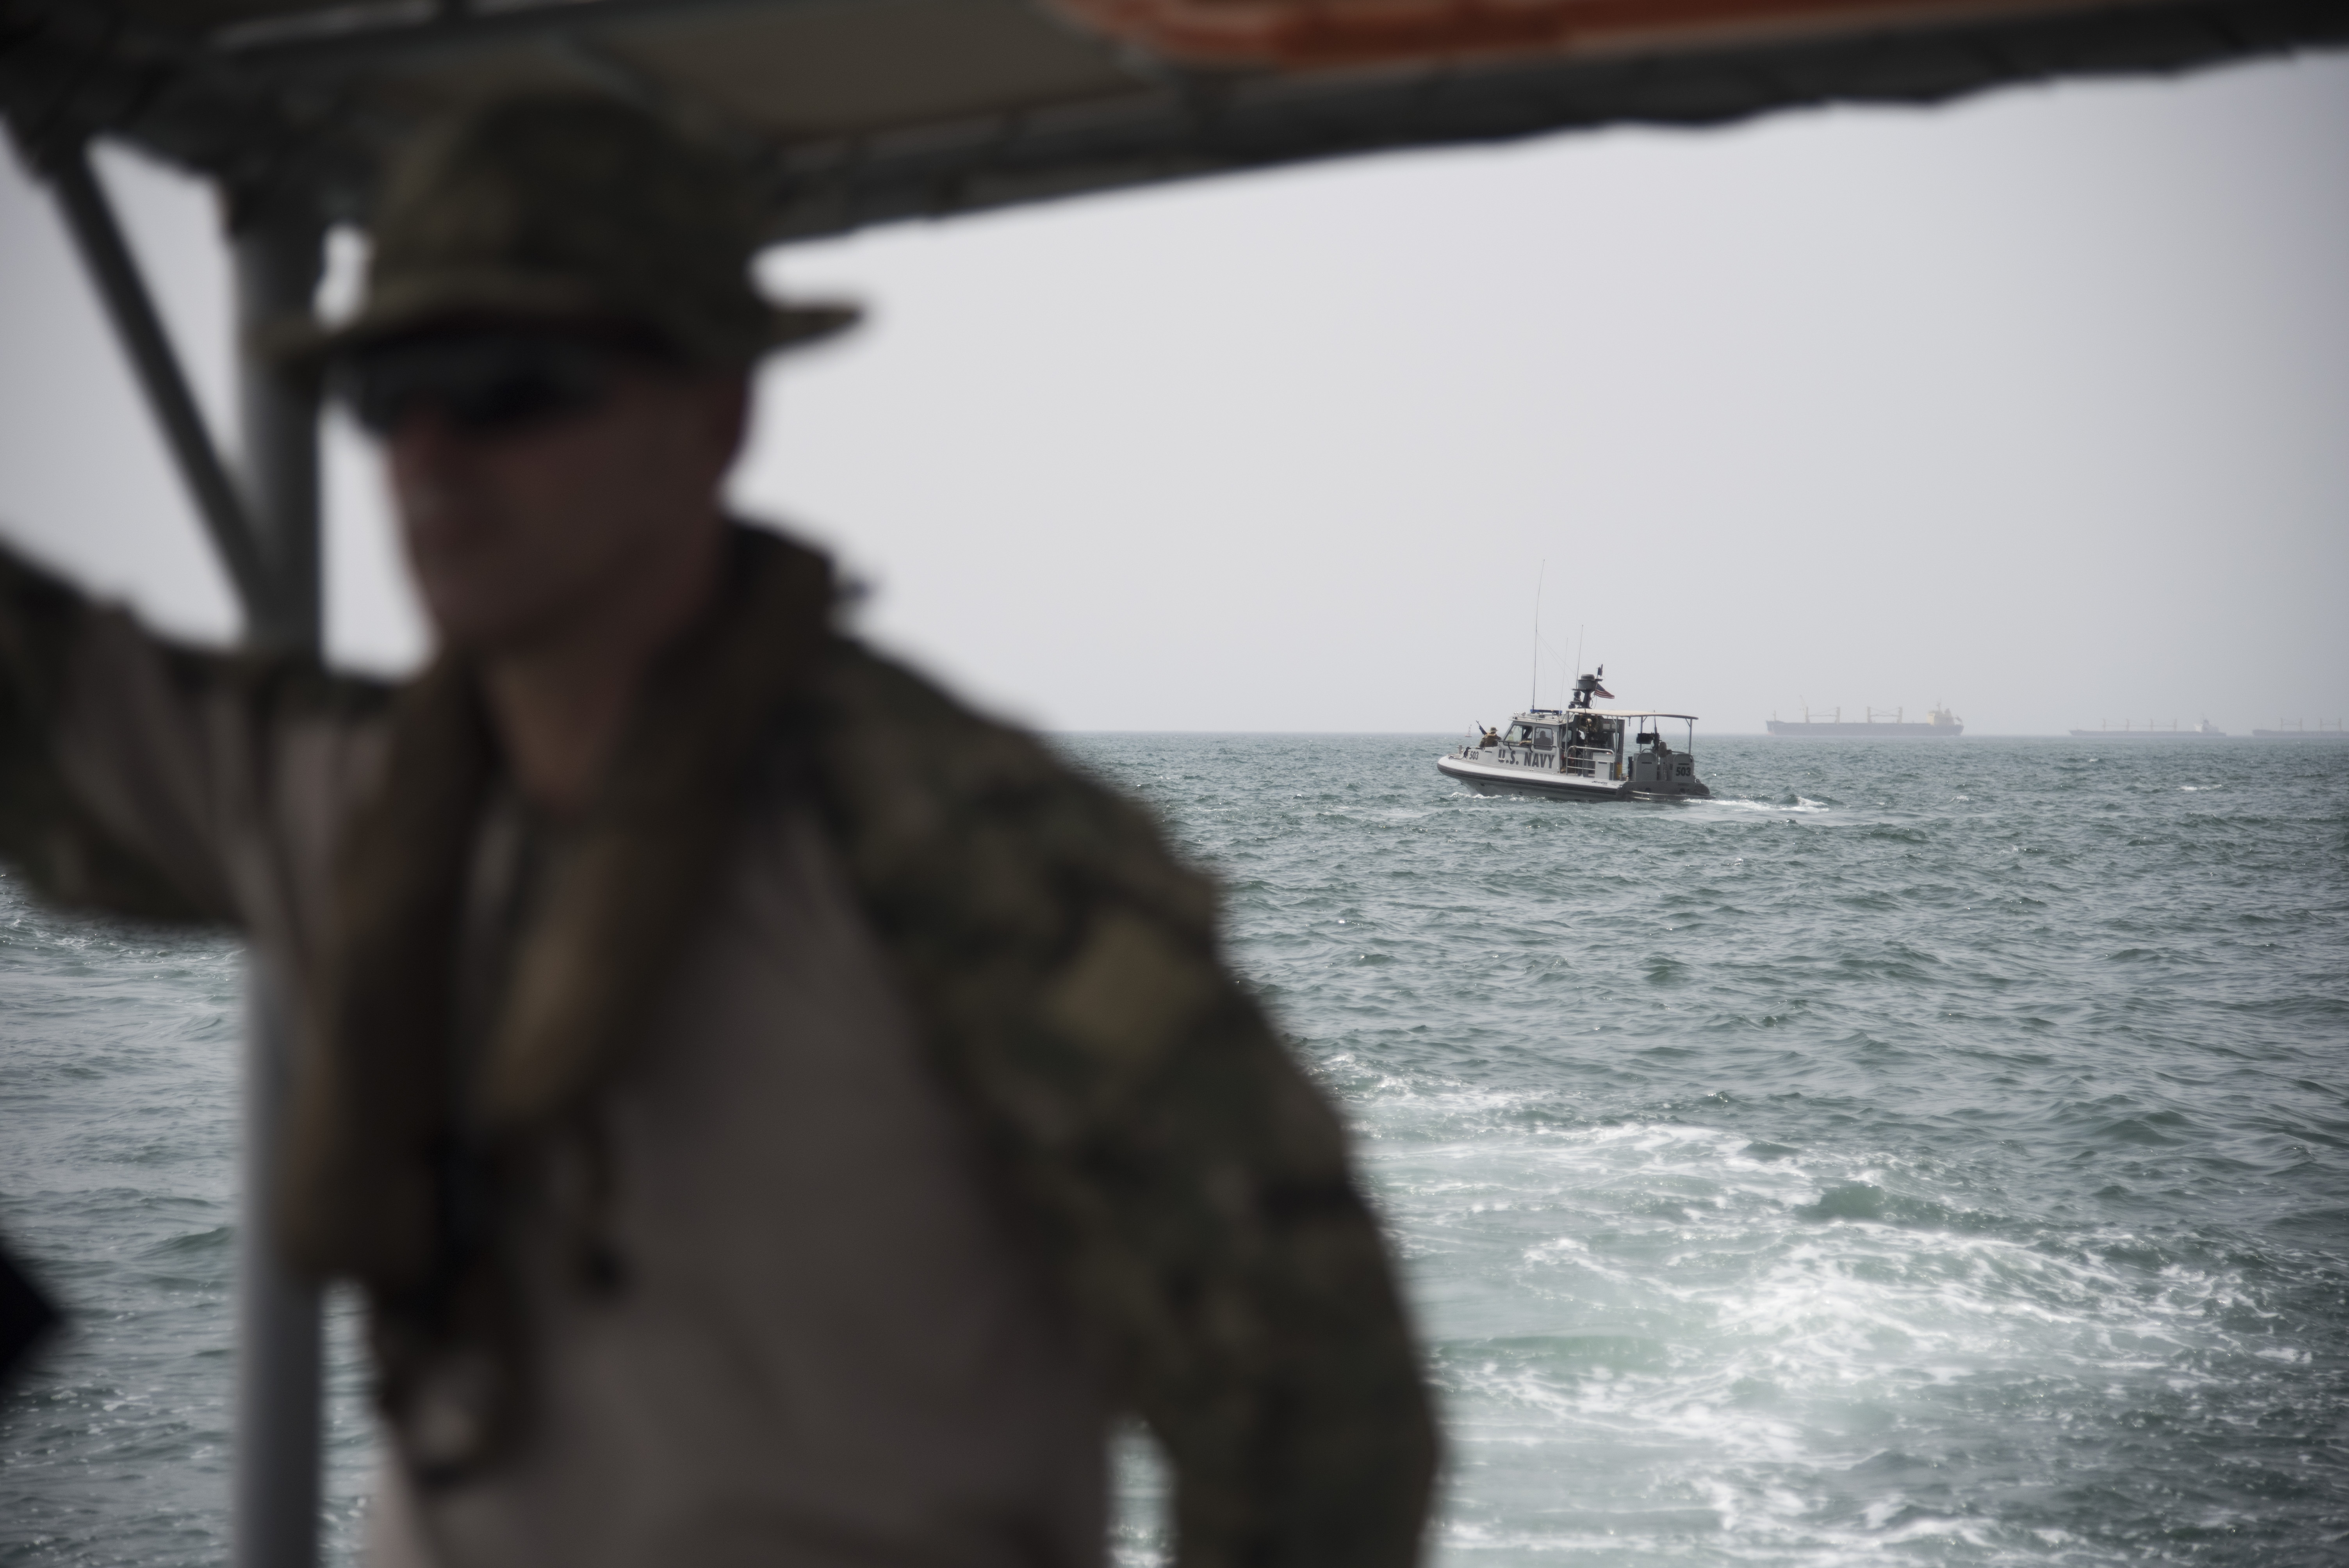 DJIBOUTI- U.S. Navy sailors with Coastal Riverine Squadron Eight, assigned to Combined Joint Task Force-Horn of Africa, provide security for a pier side U.S. asset on June 27, 2016, in Djibouti. CRS-8, out of Naval Station Newport, R.I., secures U.S. ships coming in and out of the port, and provides additional security during the ships' in-port stay. (U.S. Air Force photo by Staff Sgt. Tiffany DeNault)